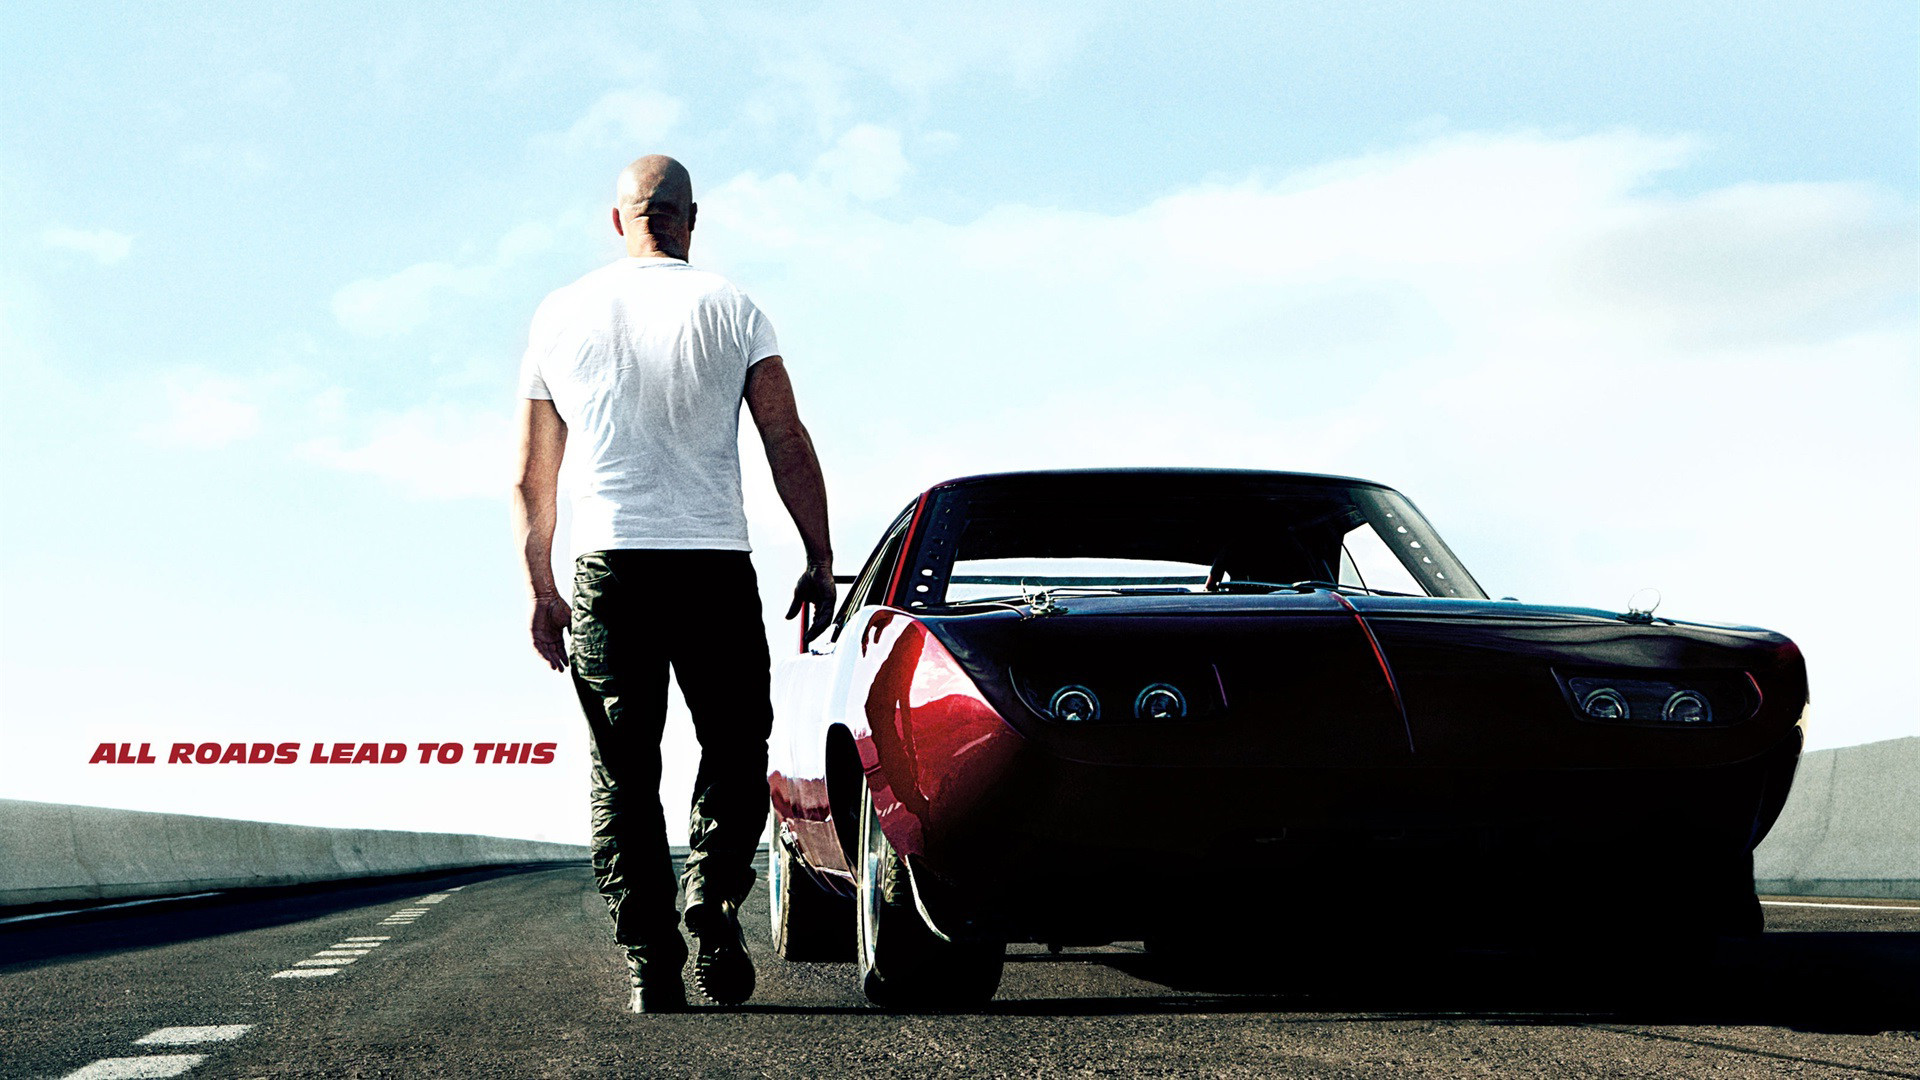 Fast And The Furious 7 Wallpaper: Fast And Furious 7 Wallpapers ·① WallpaperTag